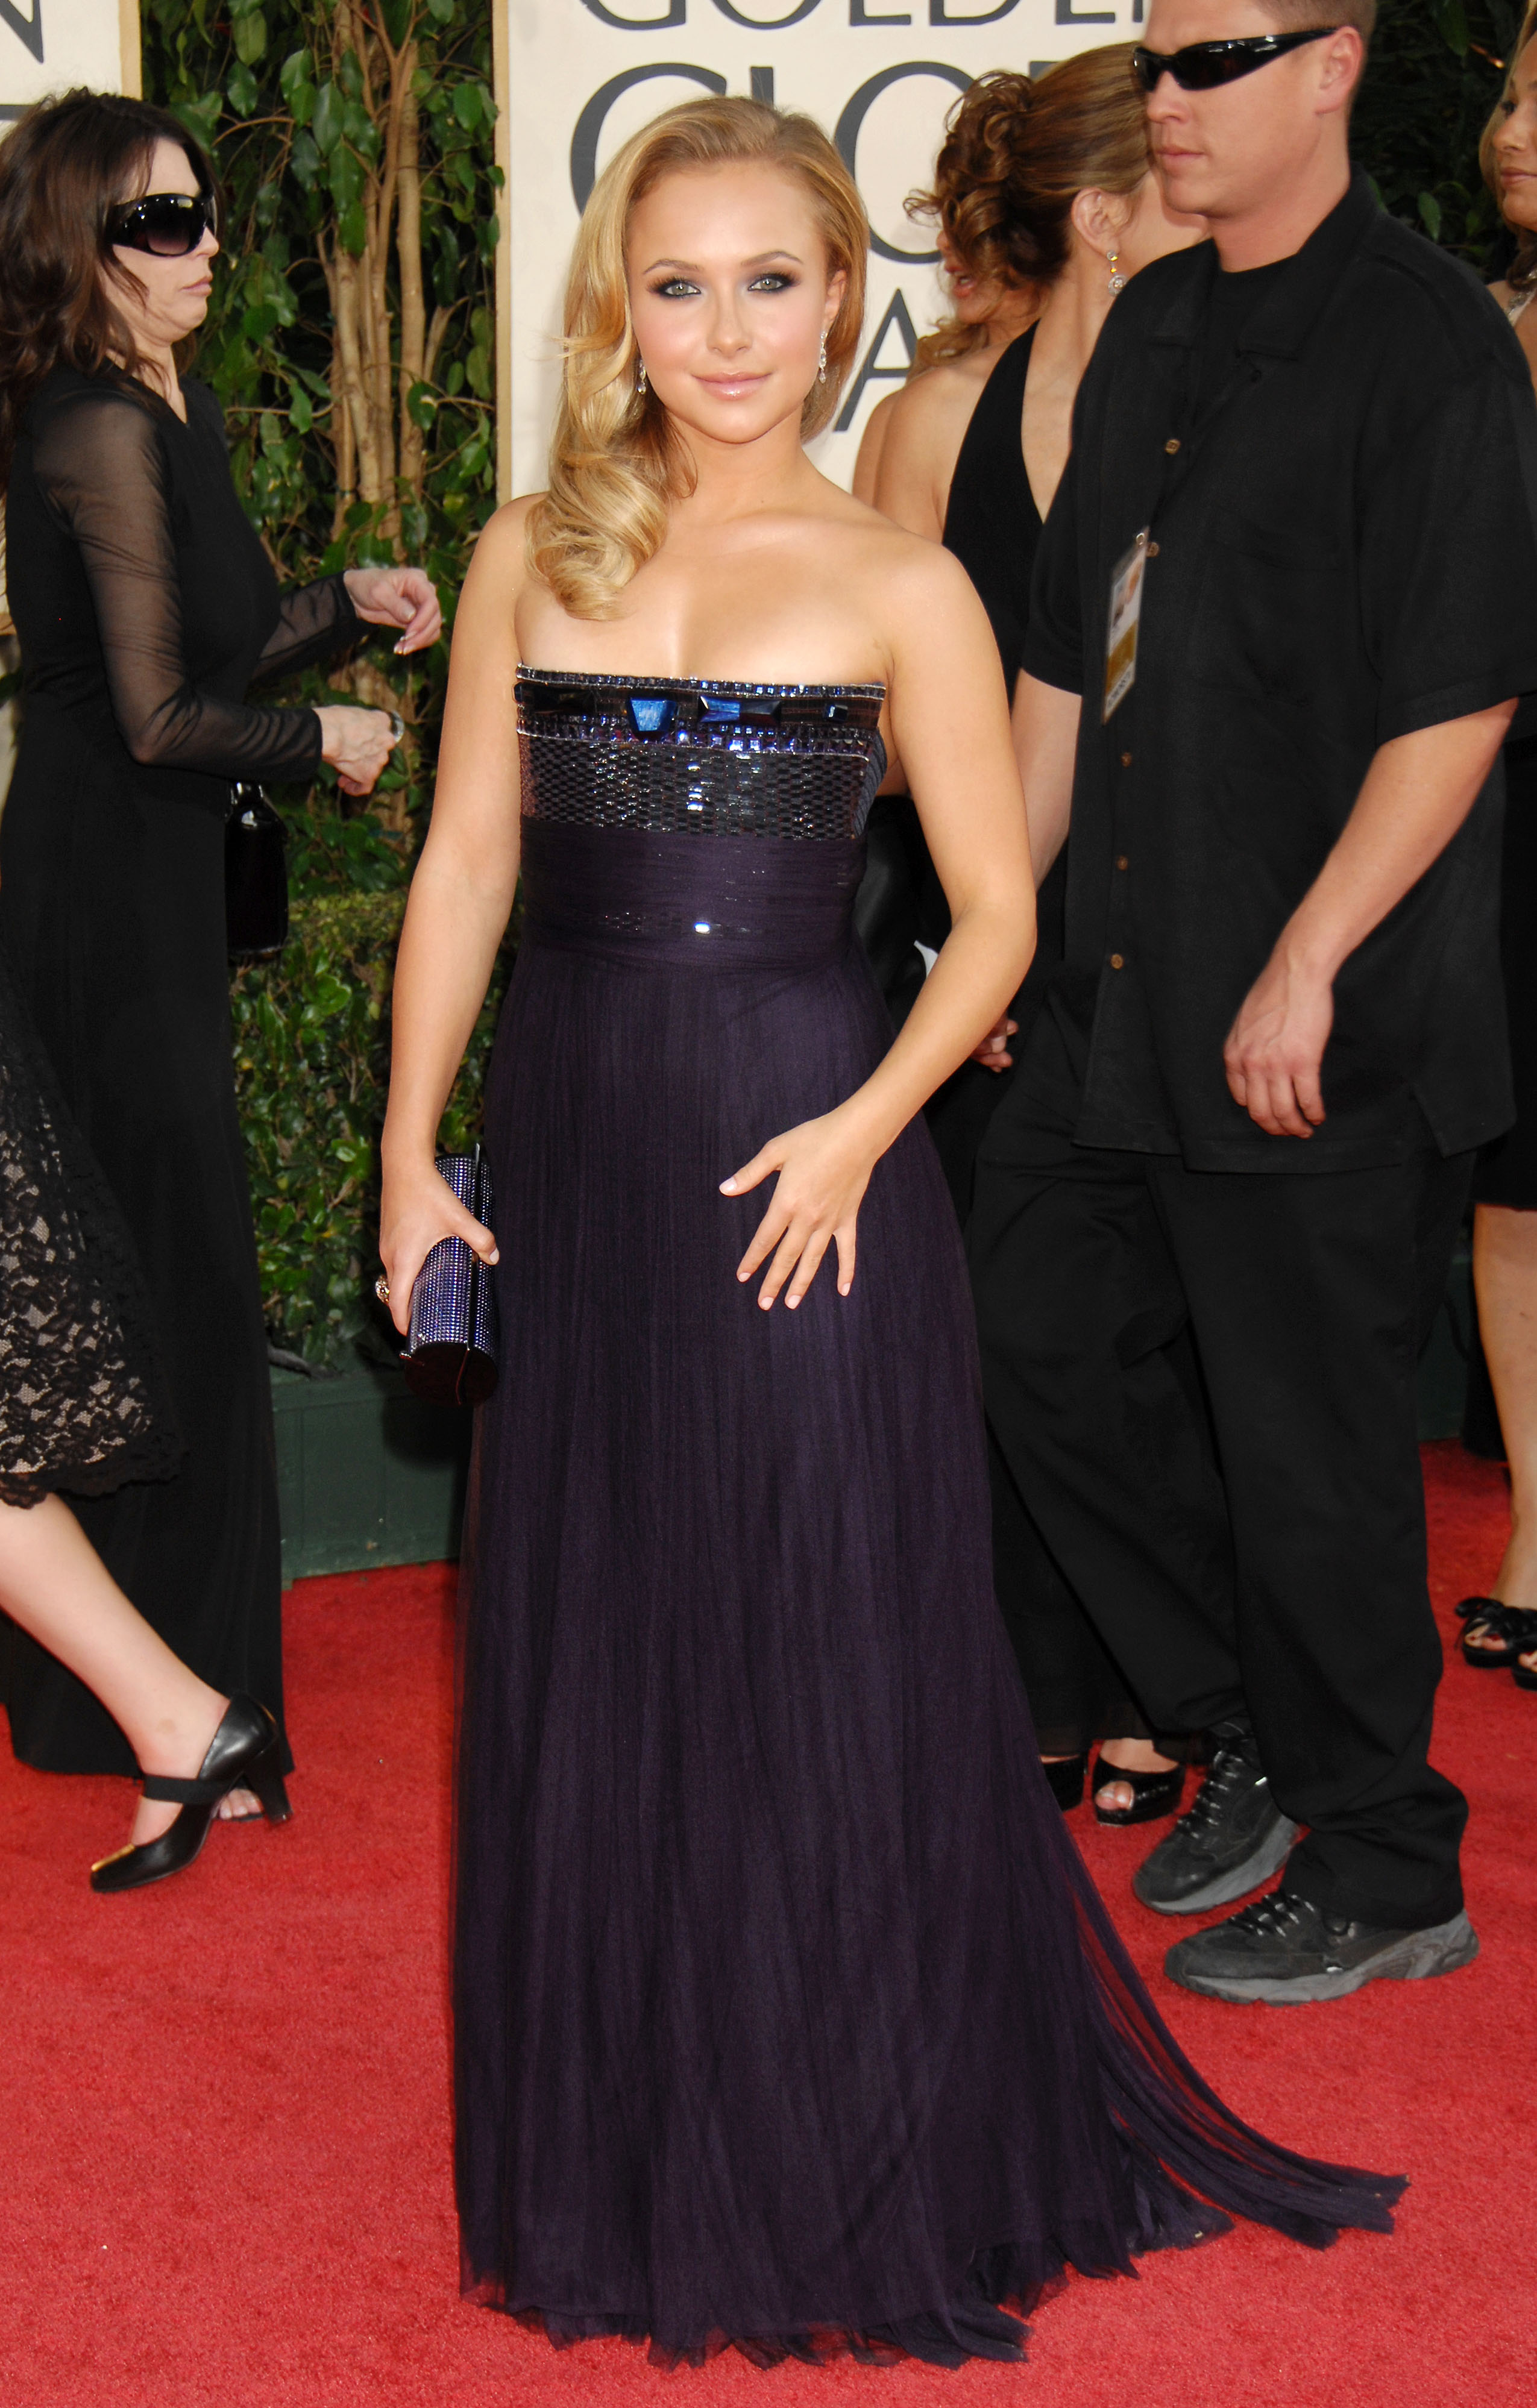 29916_Celebutopia-Hayden_Panettiere_arrives_at_the_66th_Annual_Golden_Globe_Awards-10_122_239lo.jpg